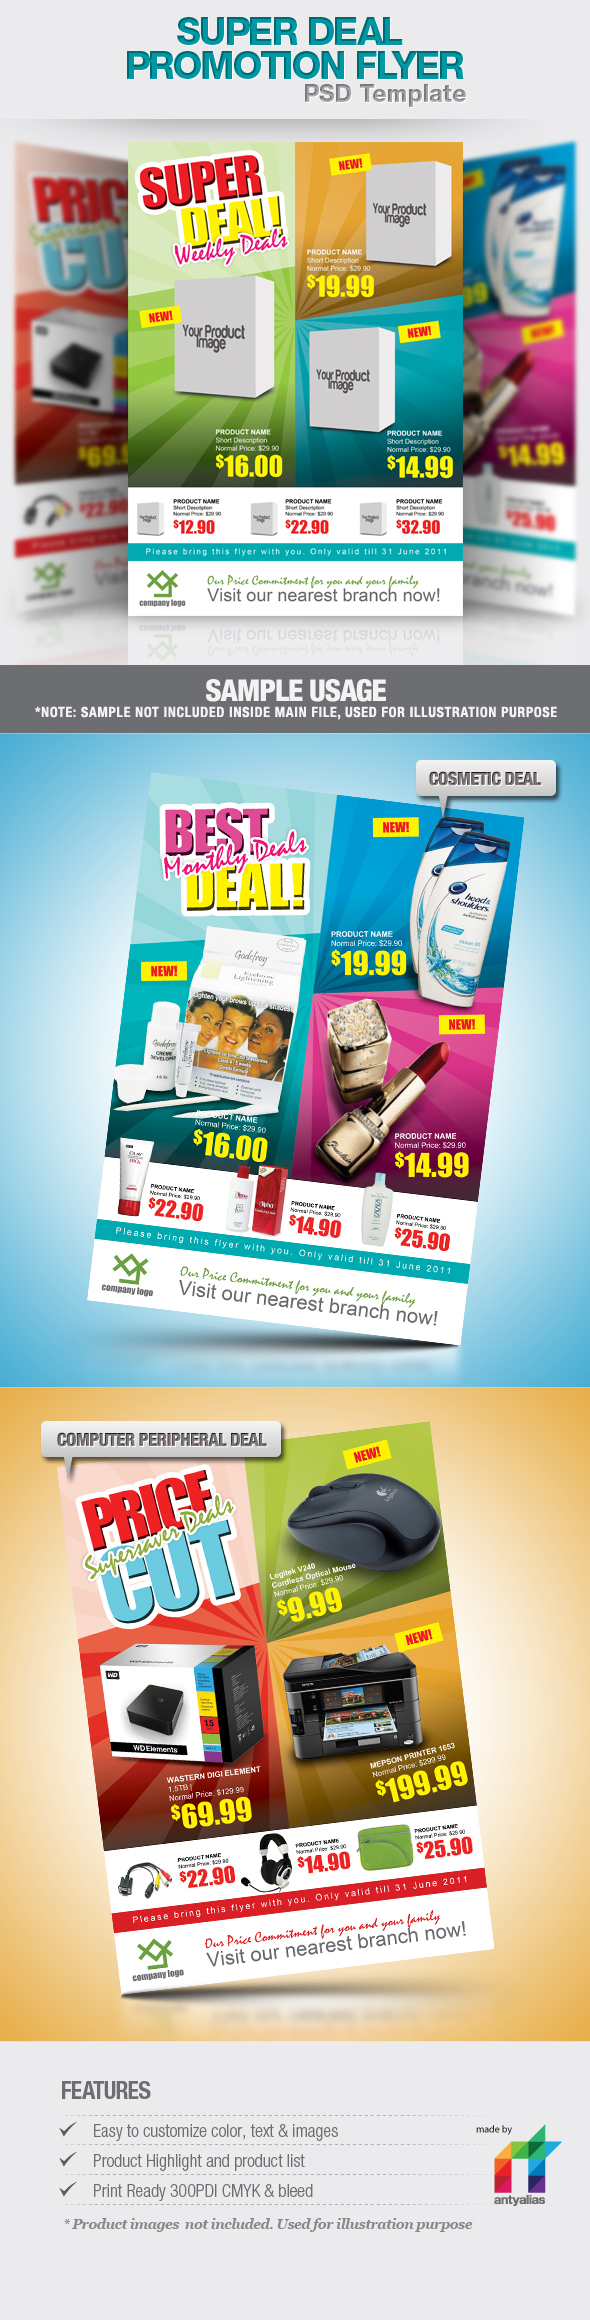 Super Deal Promotion Flyer by antyalias